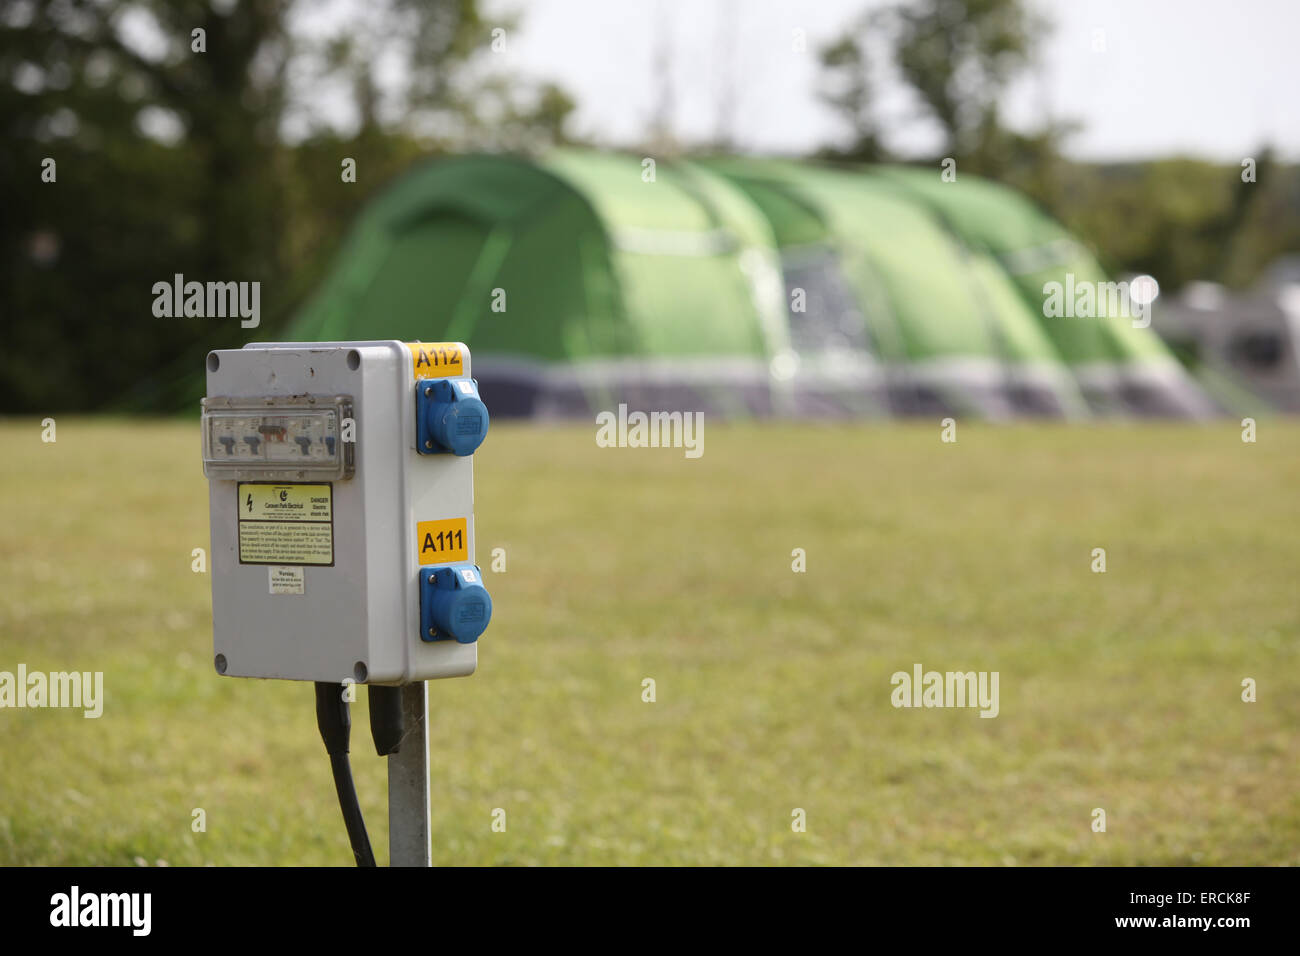 Electric hook up power point on a c&site in the UK used by caravans and tents & Electric Hook Up Stock Photos u0026 Electric Hook Up Stock Images - Alamy